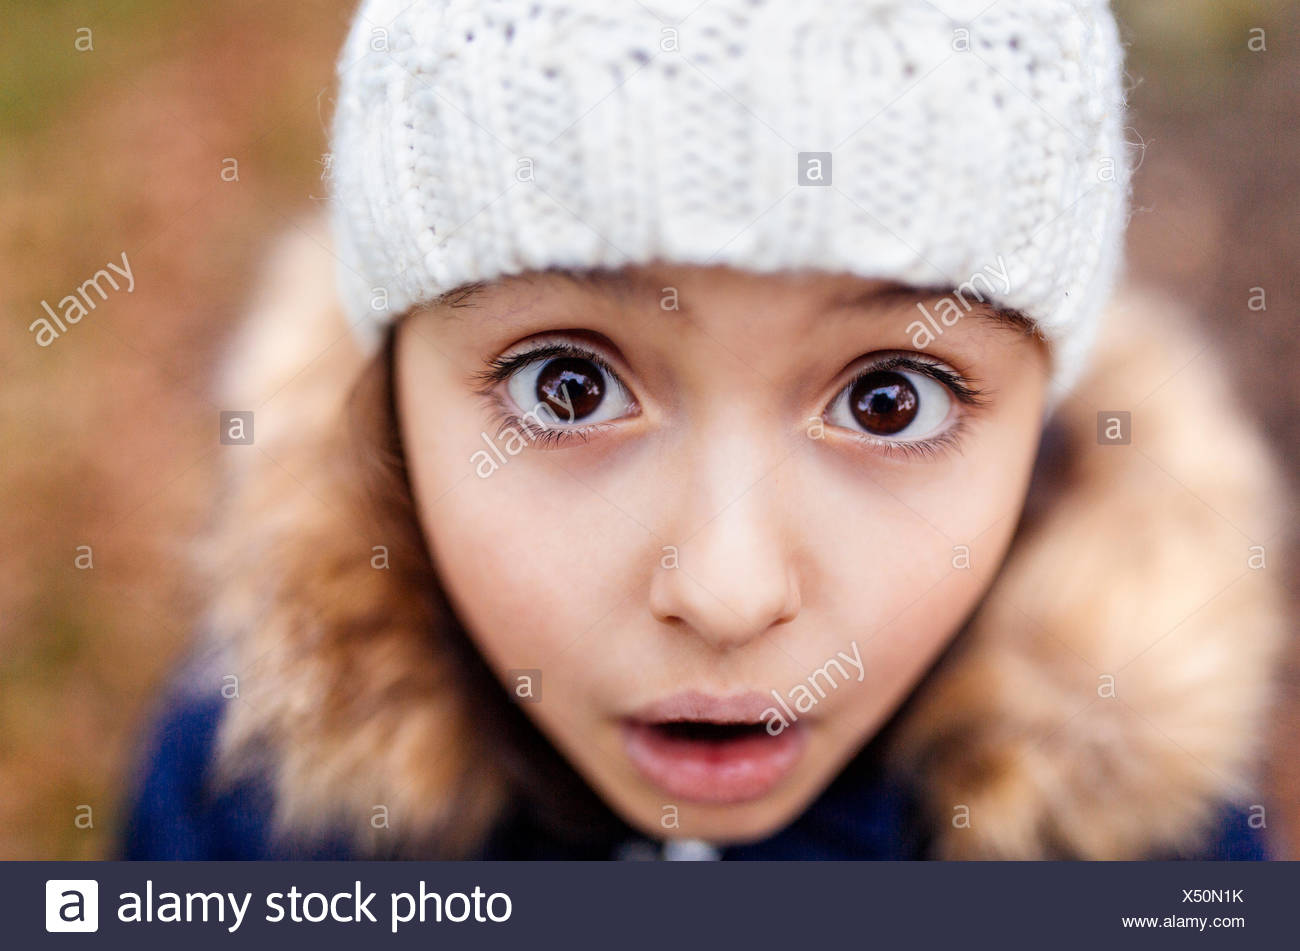 62df6c317 Portrait of little girl with eyes wide open Stock Photo: 278455679 ...